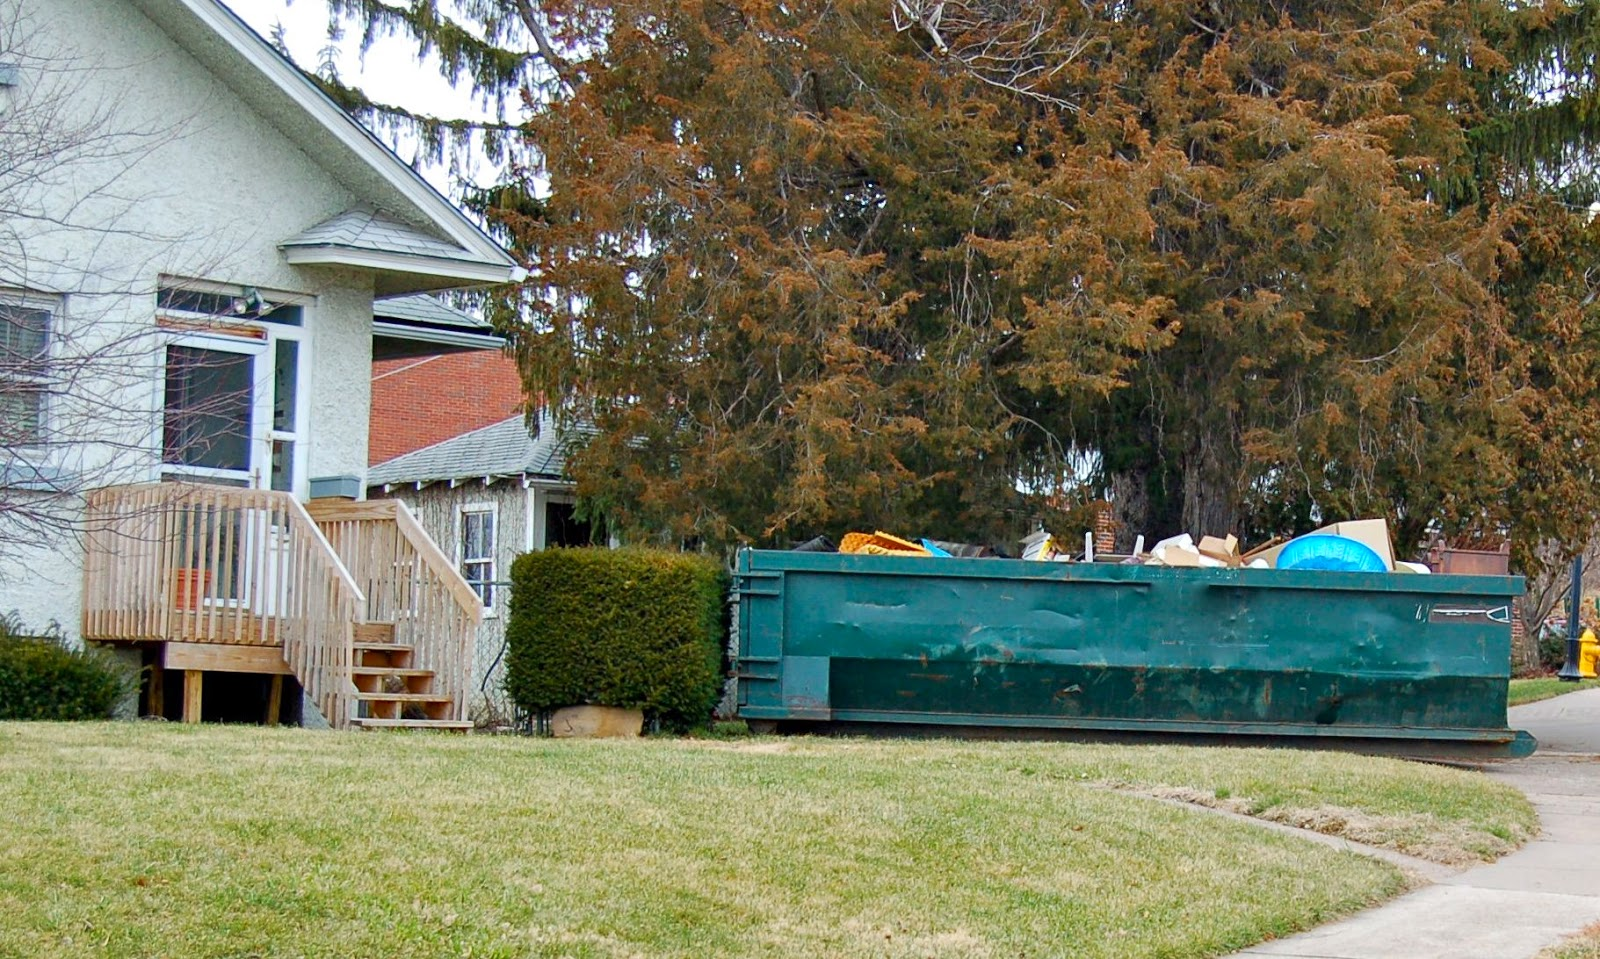 Illinois henry county andover - Dumpster Rental Henry County Illinois